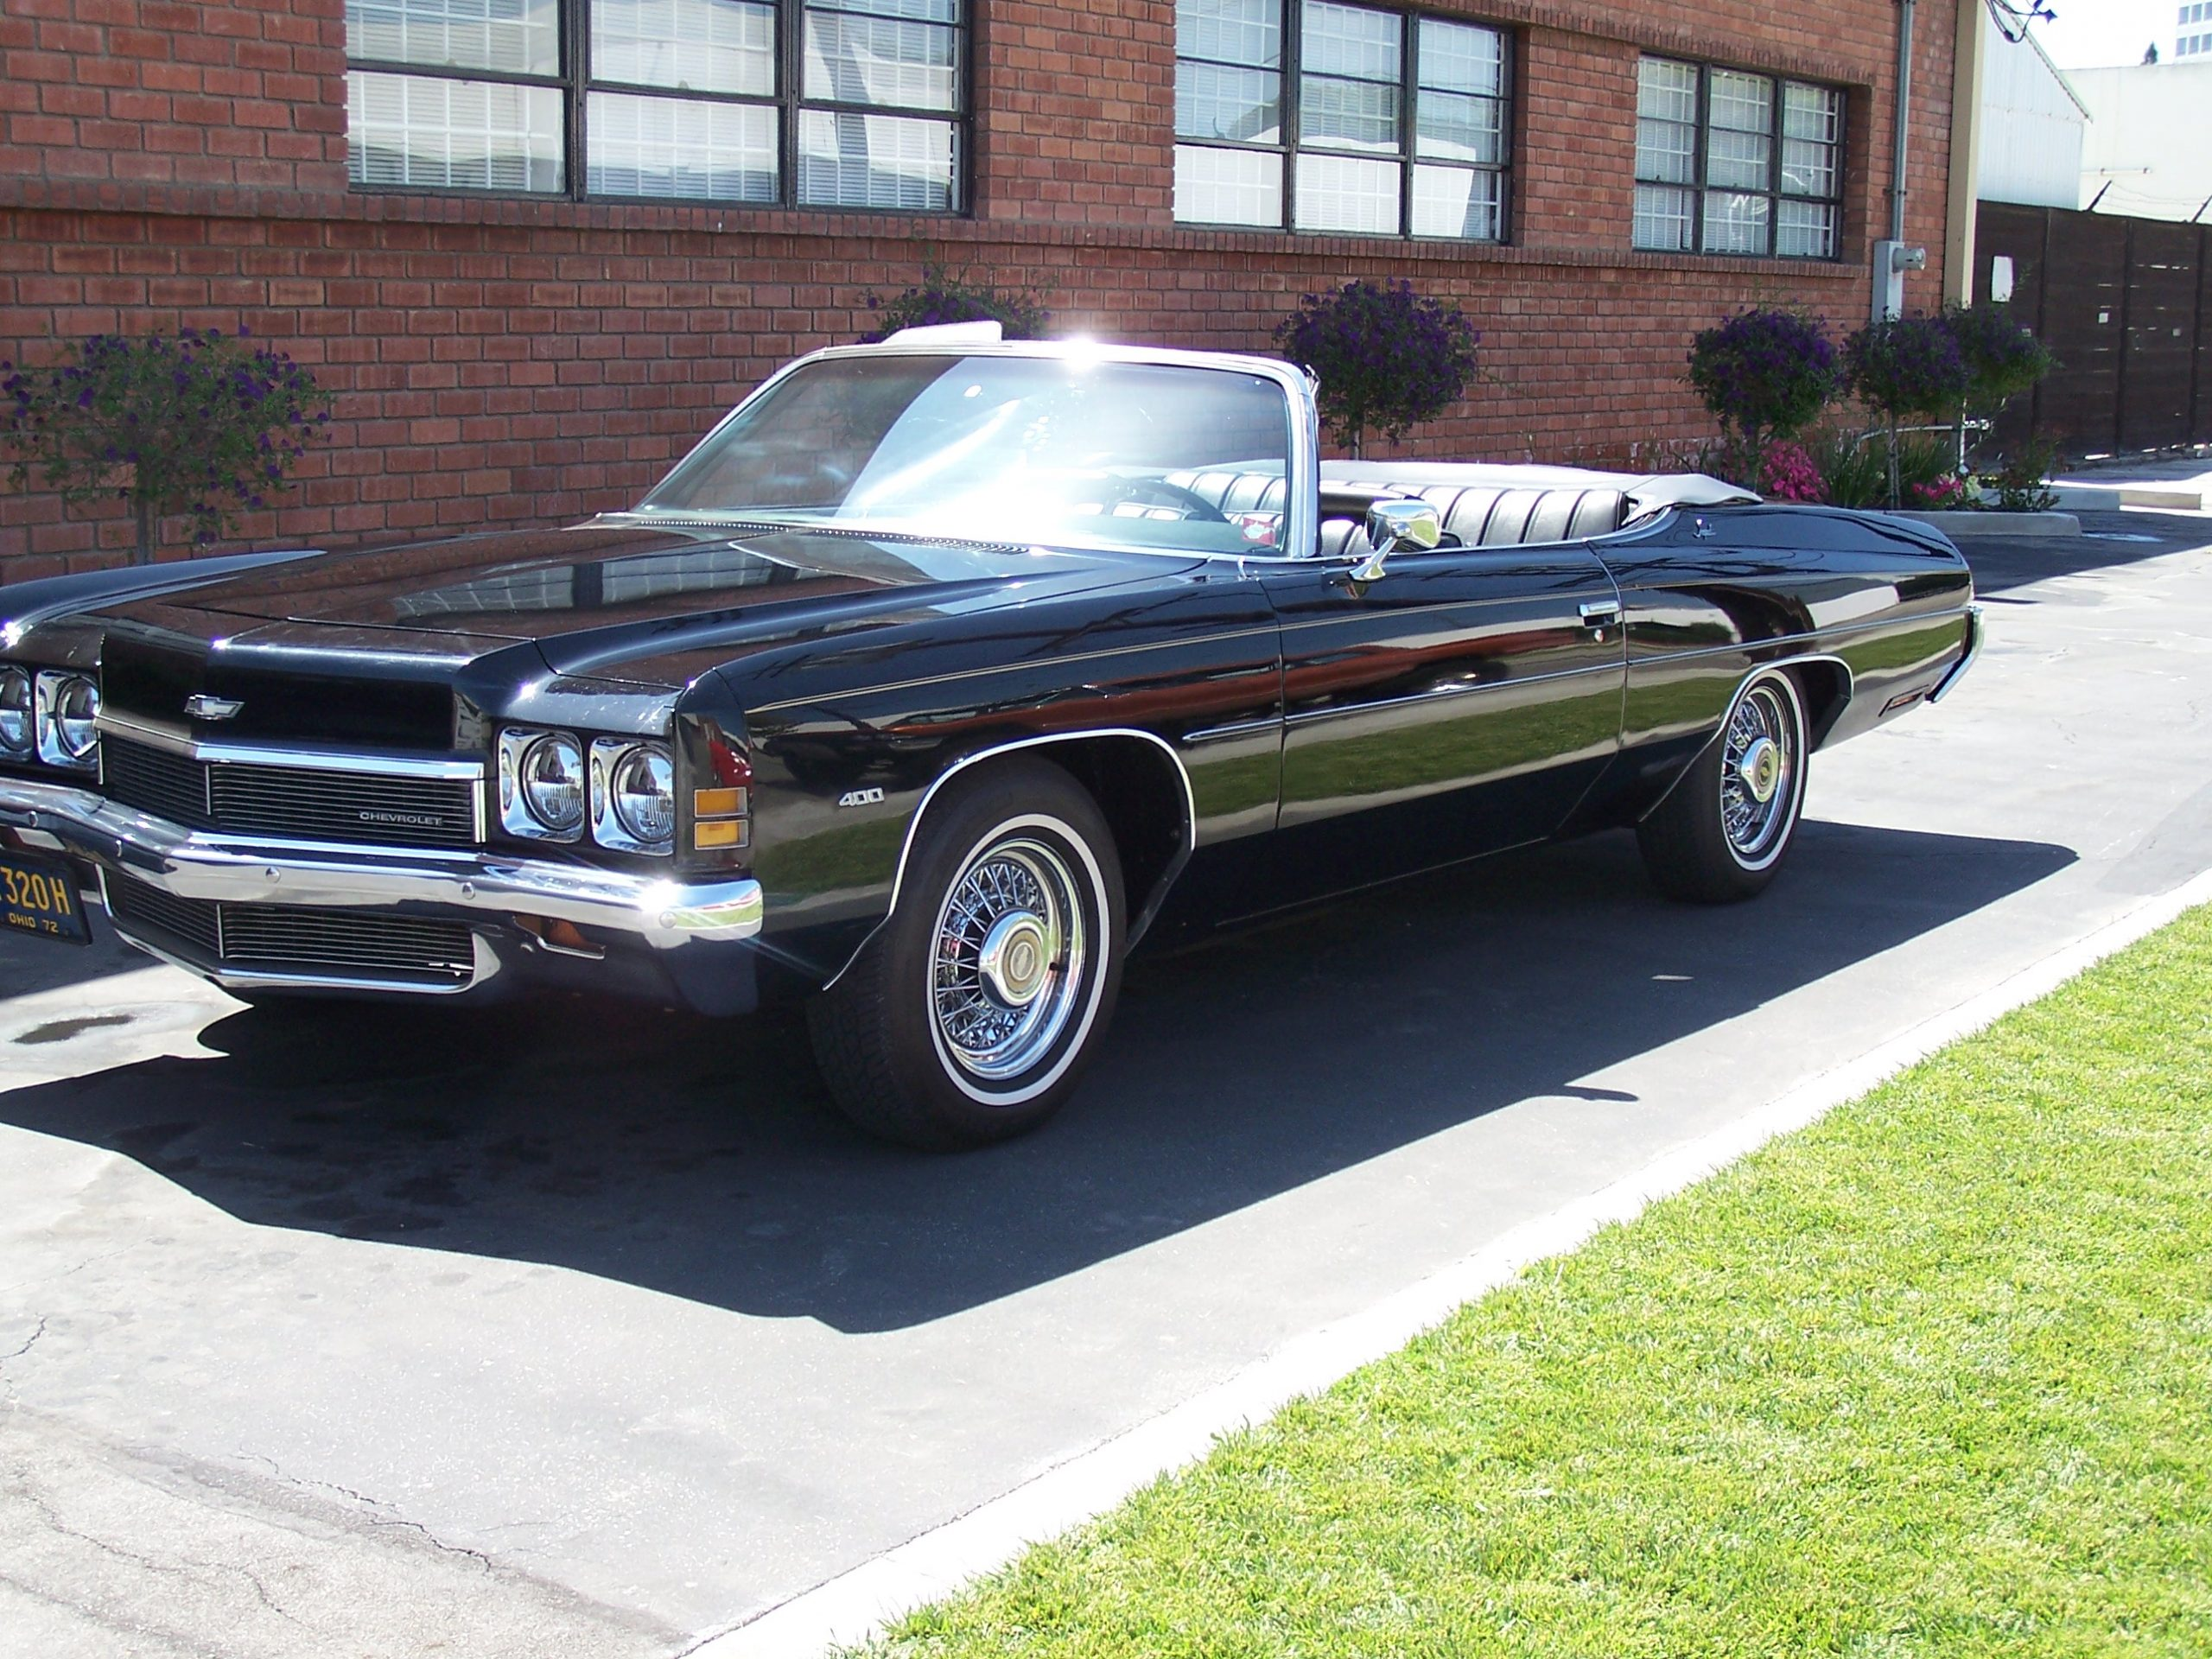 1972 Chevy Impala for rent